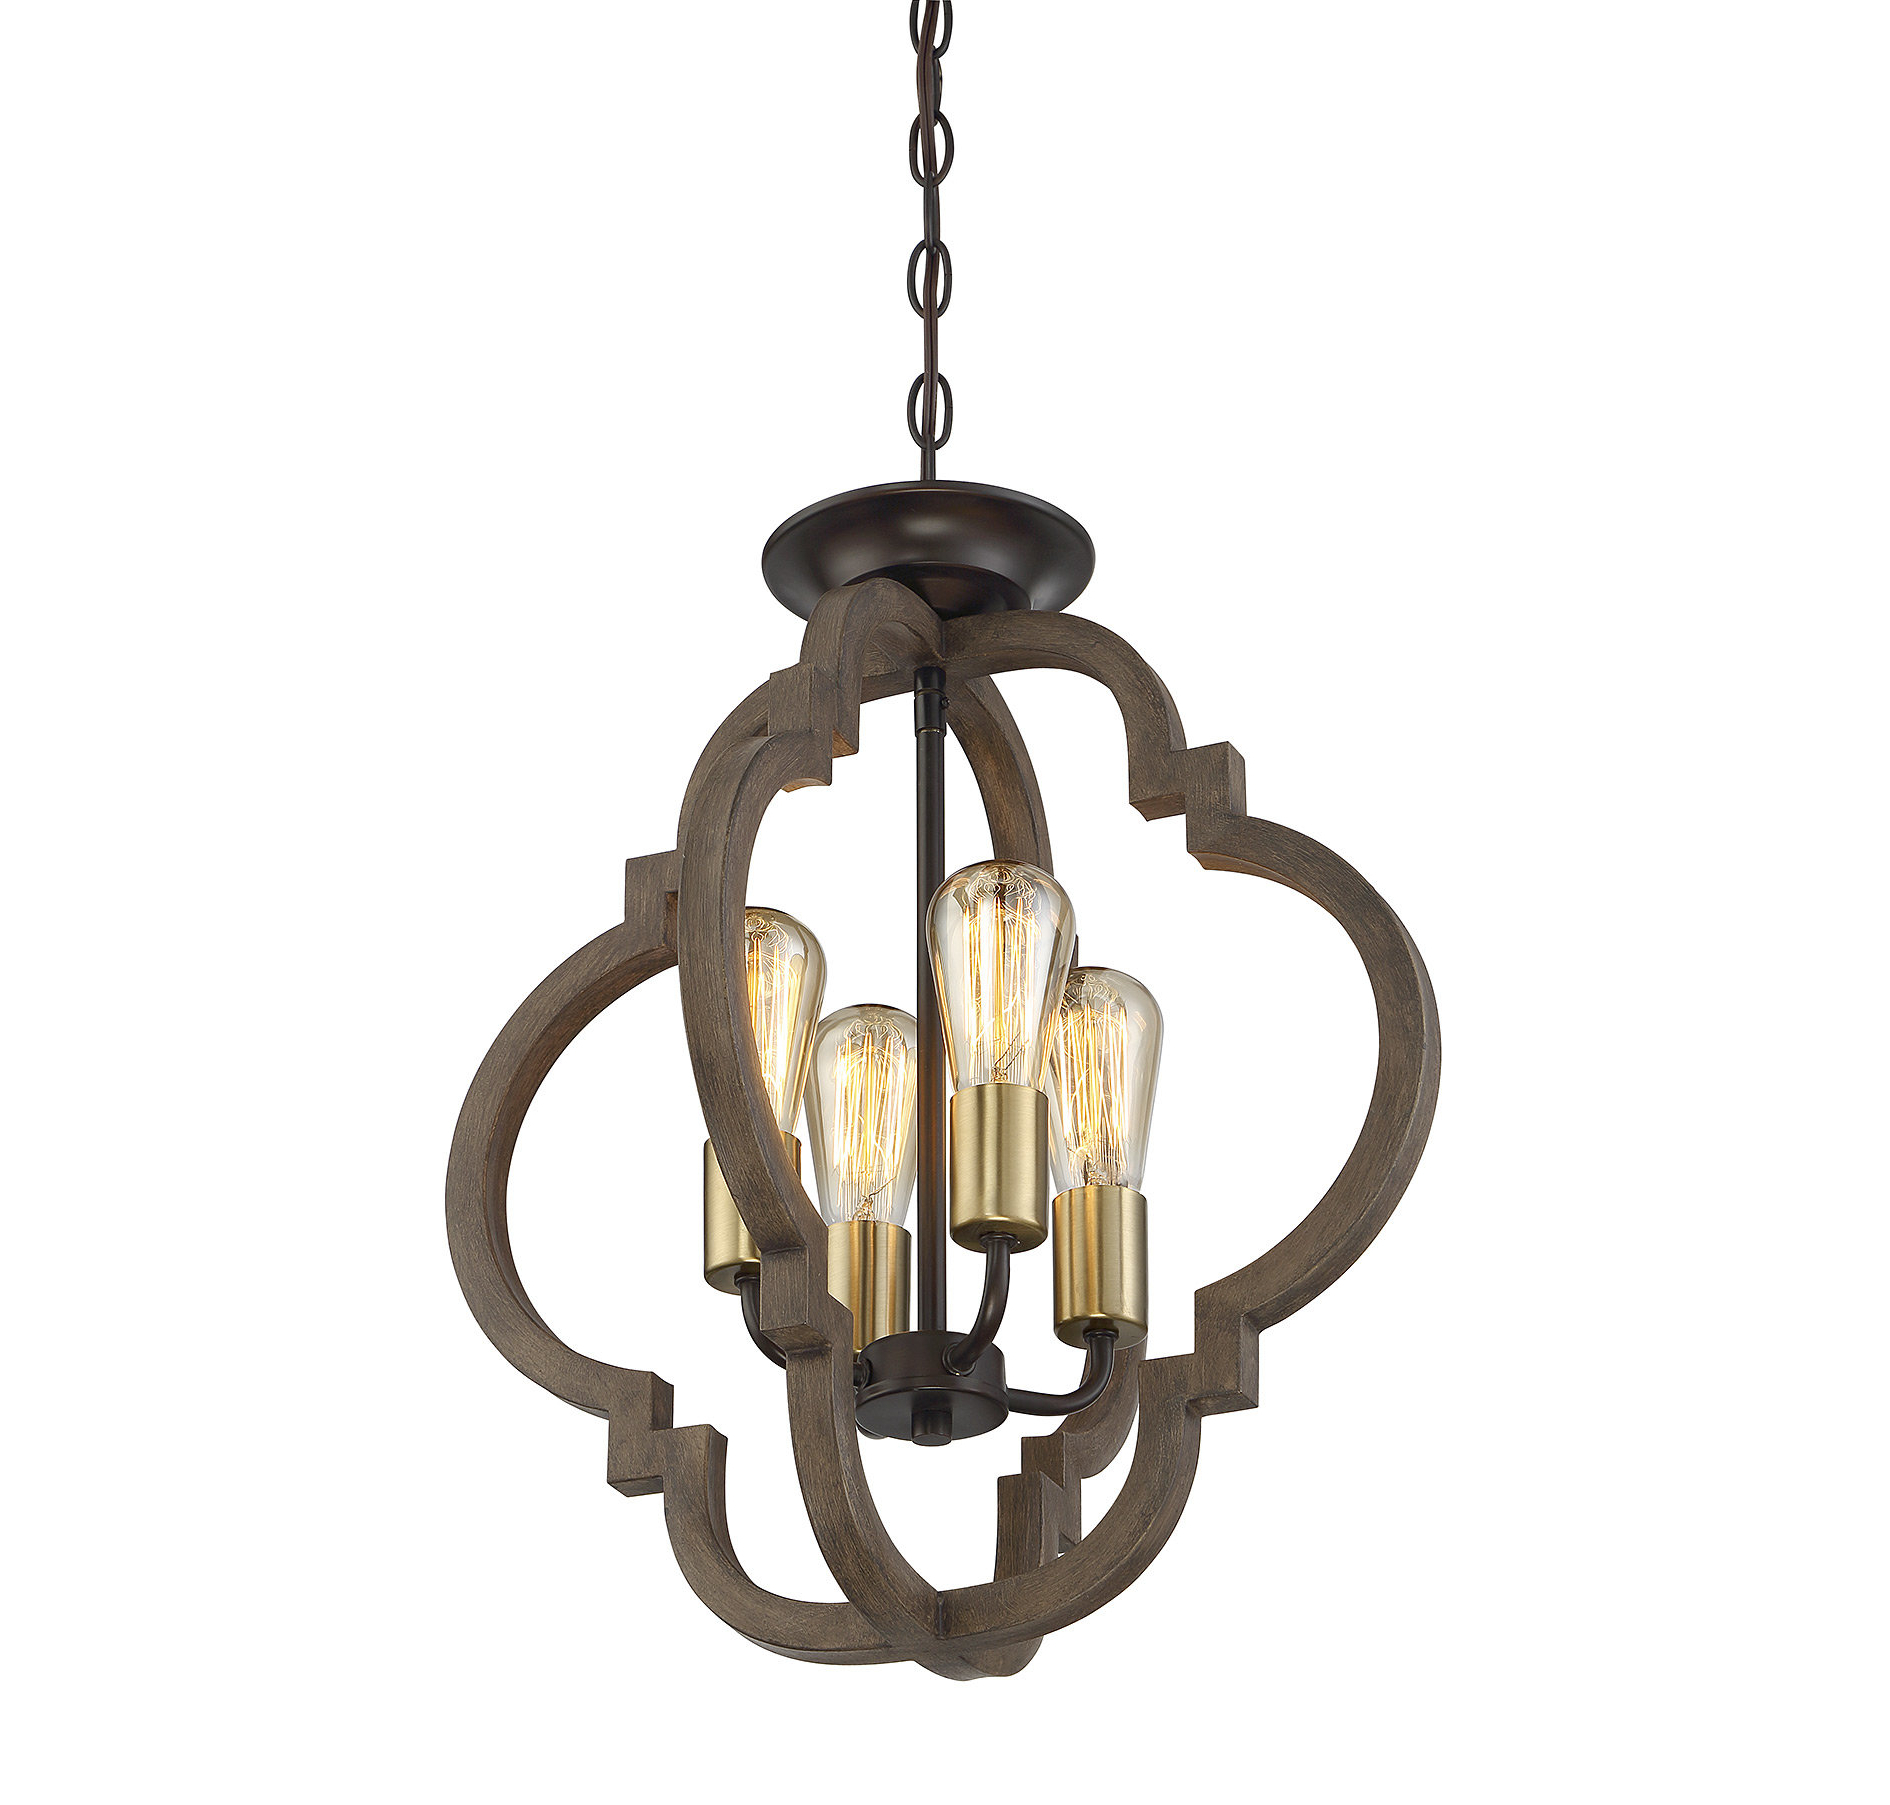 [%wayfair: Semi Annual Lighting Sale – Up To 70% Off Lighting Within Latest Joon 6 Light Globe Chandeliers|joon 6 Light Globe Chandeliers In Latest Wayfair: Semi Annual Lighting Sale – Up To 70% Off Lighting|most Up To Date Joon 6 Light Globe Chandeliers Inside Wayfair: Semi Annual Lighting Sale – Up To 70% Off Lighting|popular Wayfair: Semi Annual Lighting Sale – Up To 70% Off Lighting For Joon 6 Light Globe Chandeliers%] (Gallery 16 of 20)